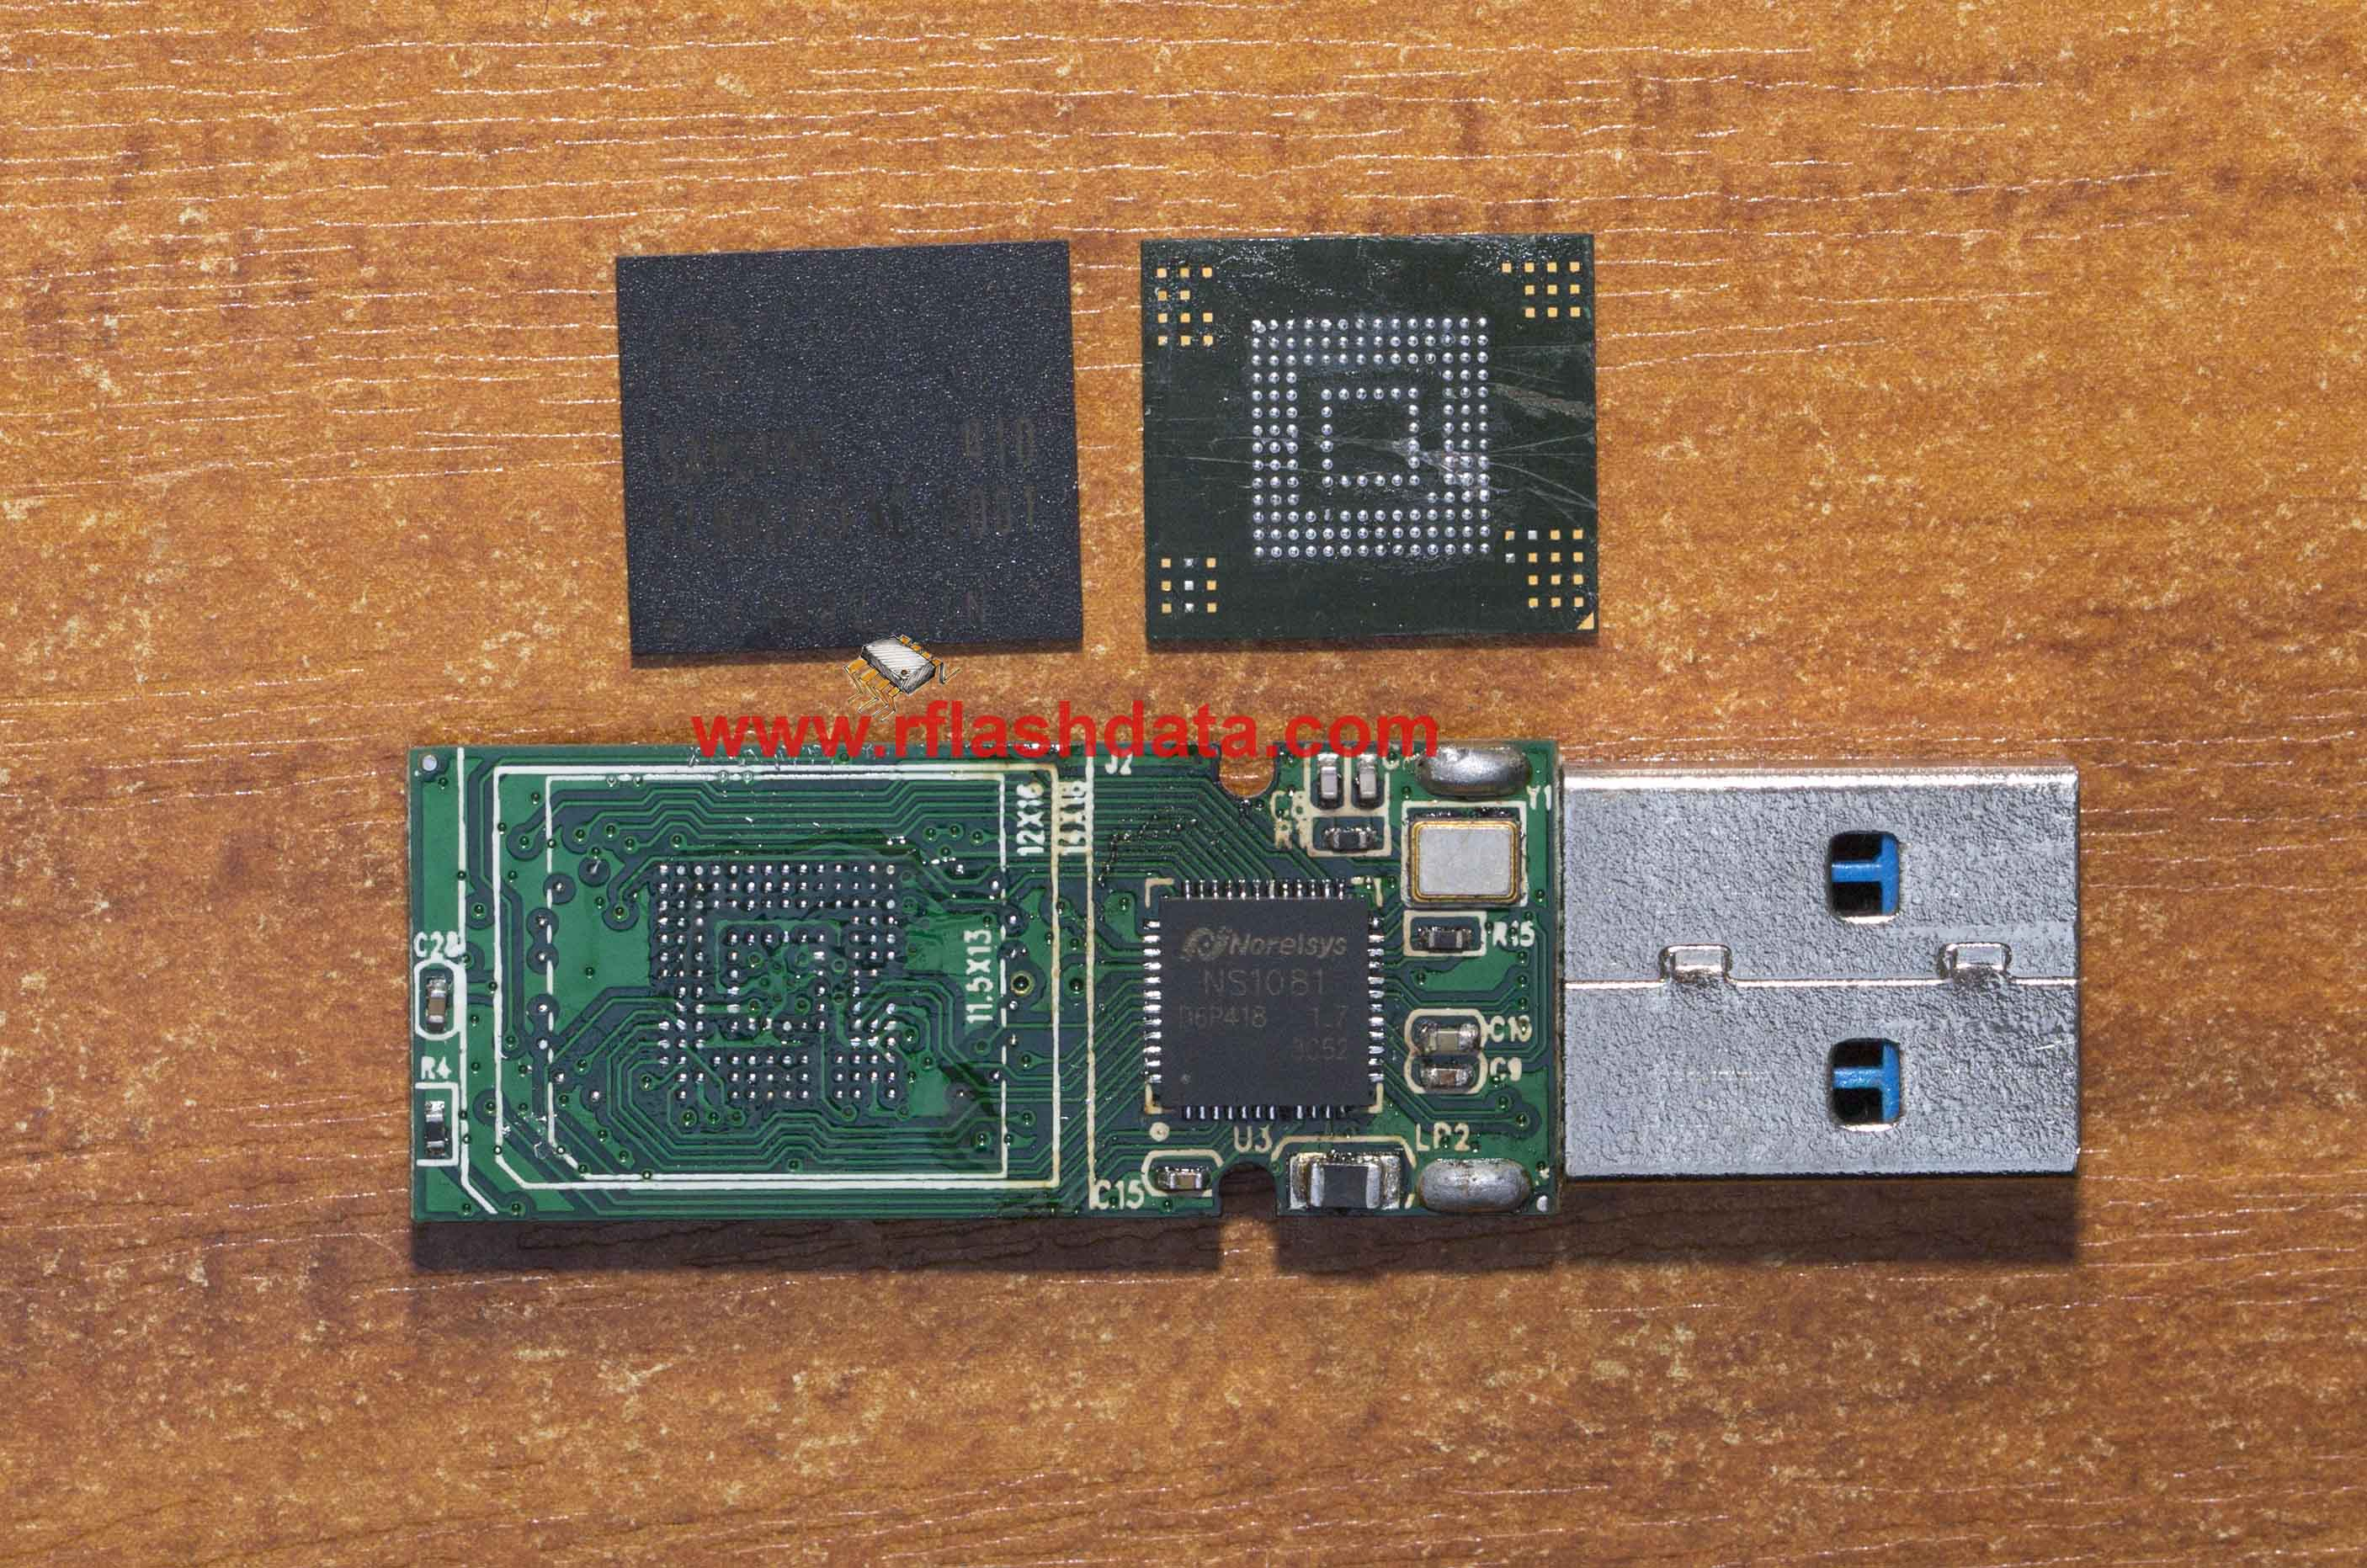 Norelsys NS1081 USB3.0 flash drive data recovery